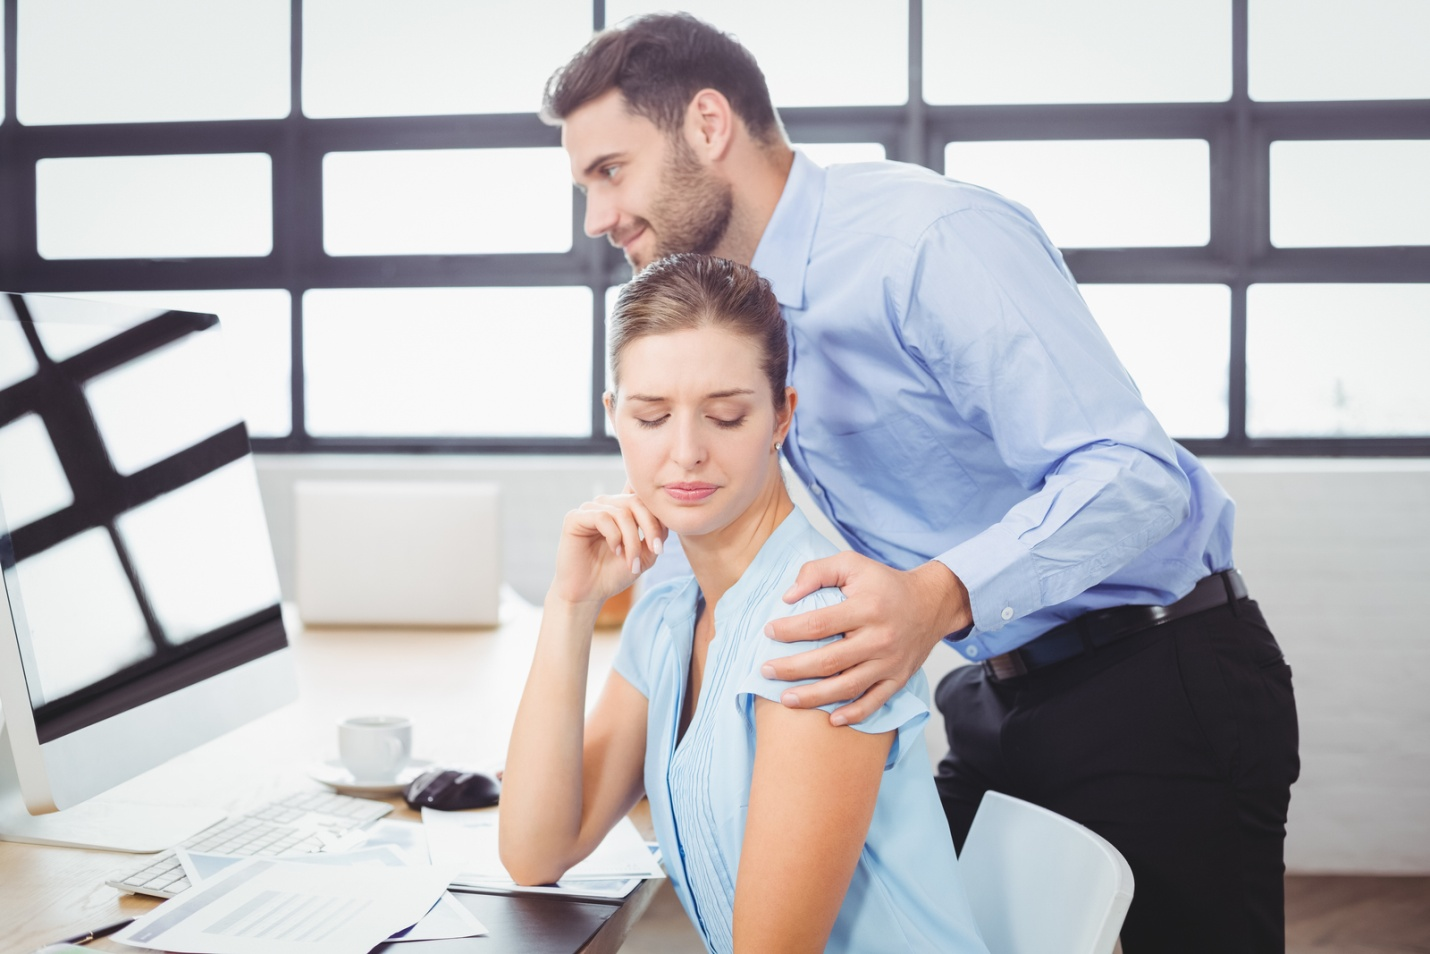 A male supervisor harasses a female employee by touching her inappropriately.